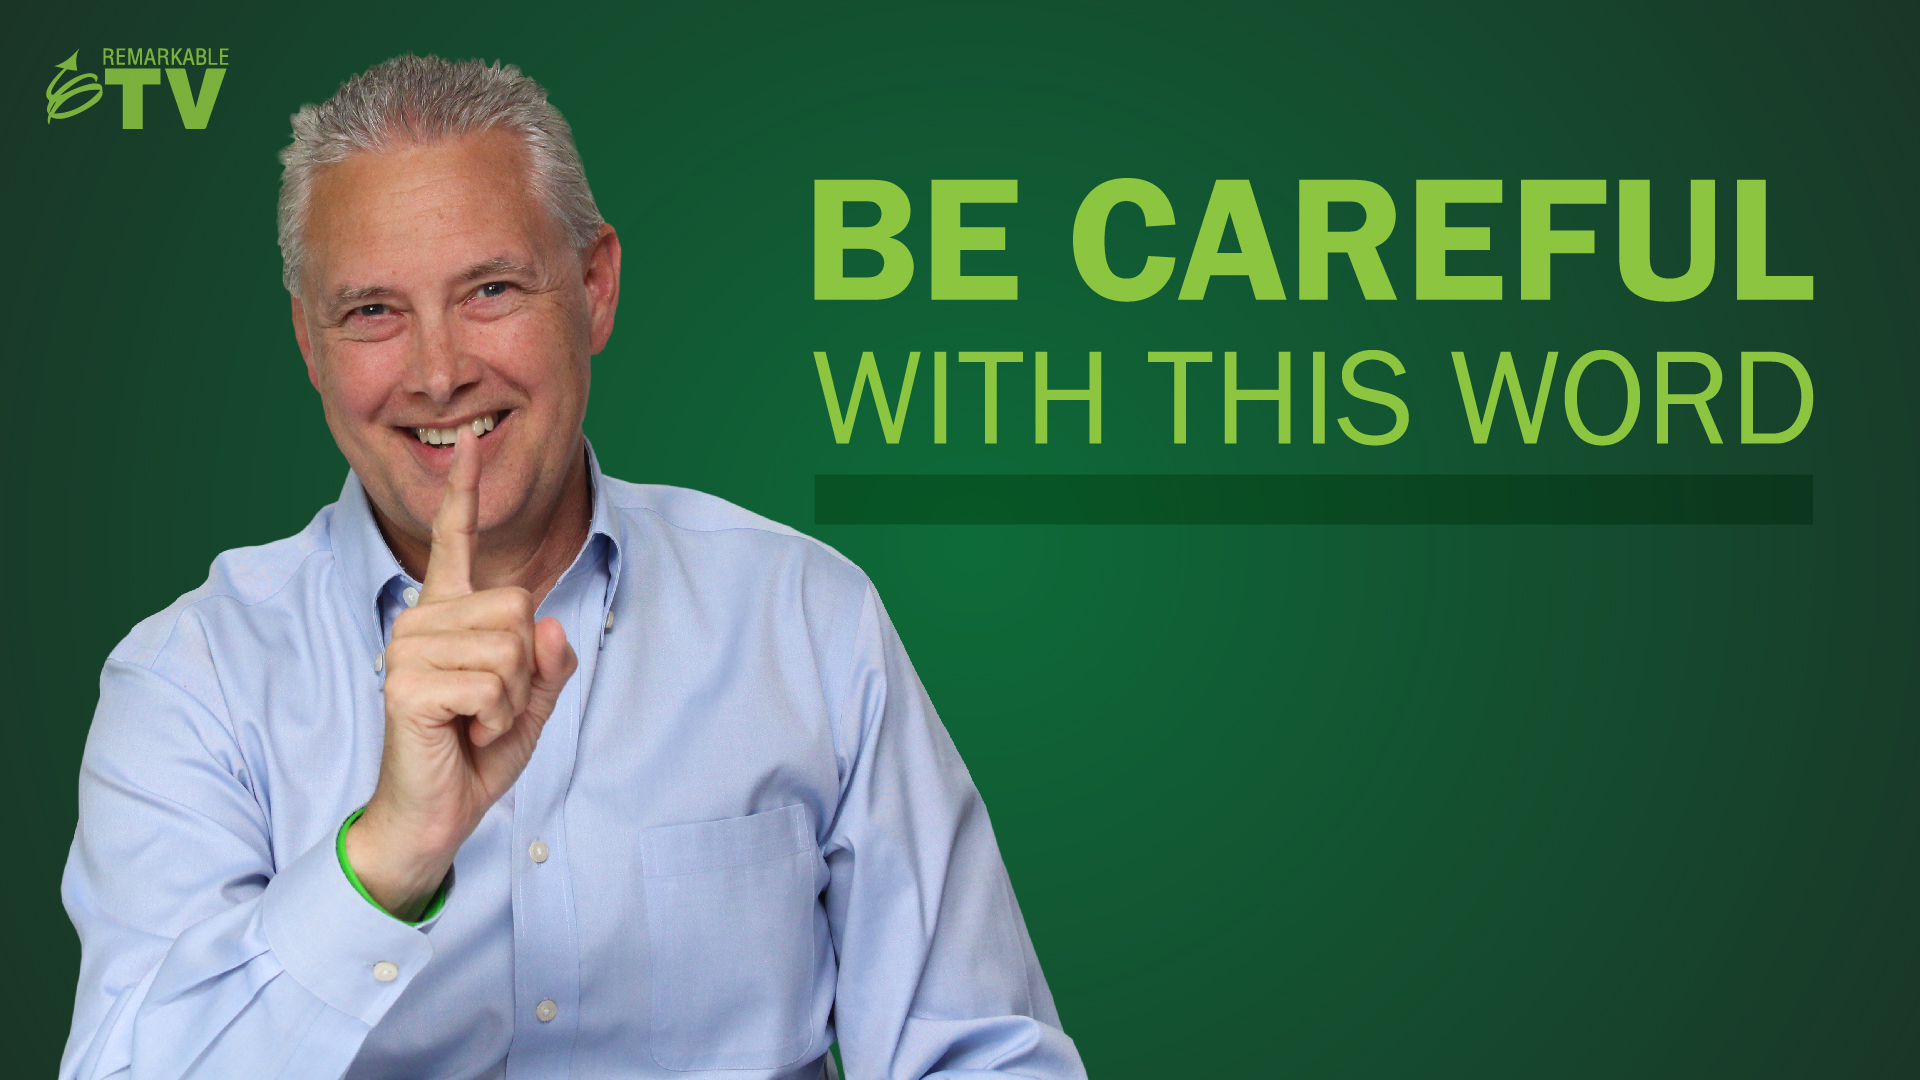 Be Careful With This Word - a Remarkable TV episode with Kevin Eikenberry